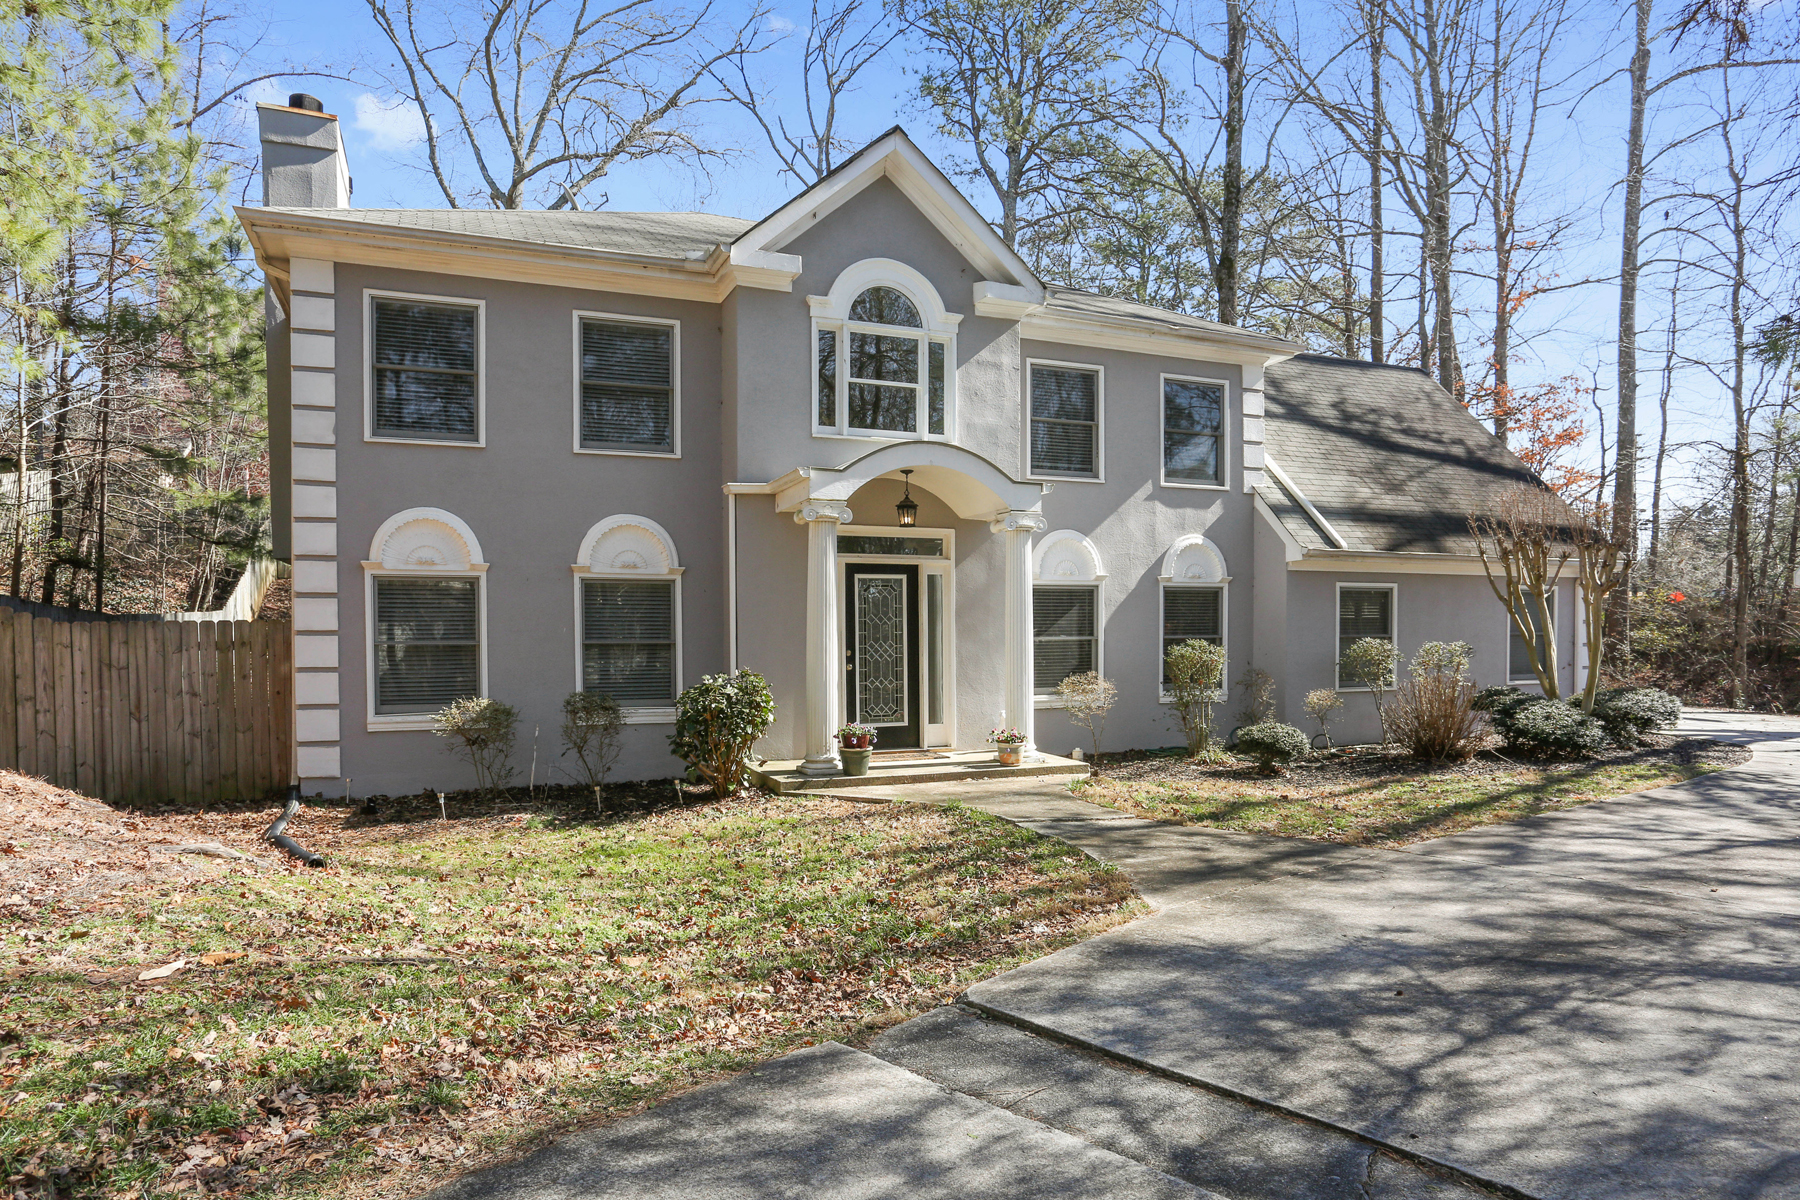 Single Family Home for Rent at Home For Lease In Amazing Alpharetta Location 515 Spring Gate Drive Alpharetta, Georgia 30009 United States